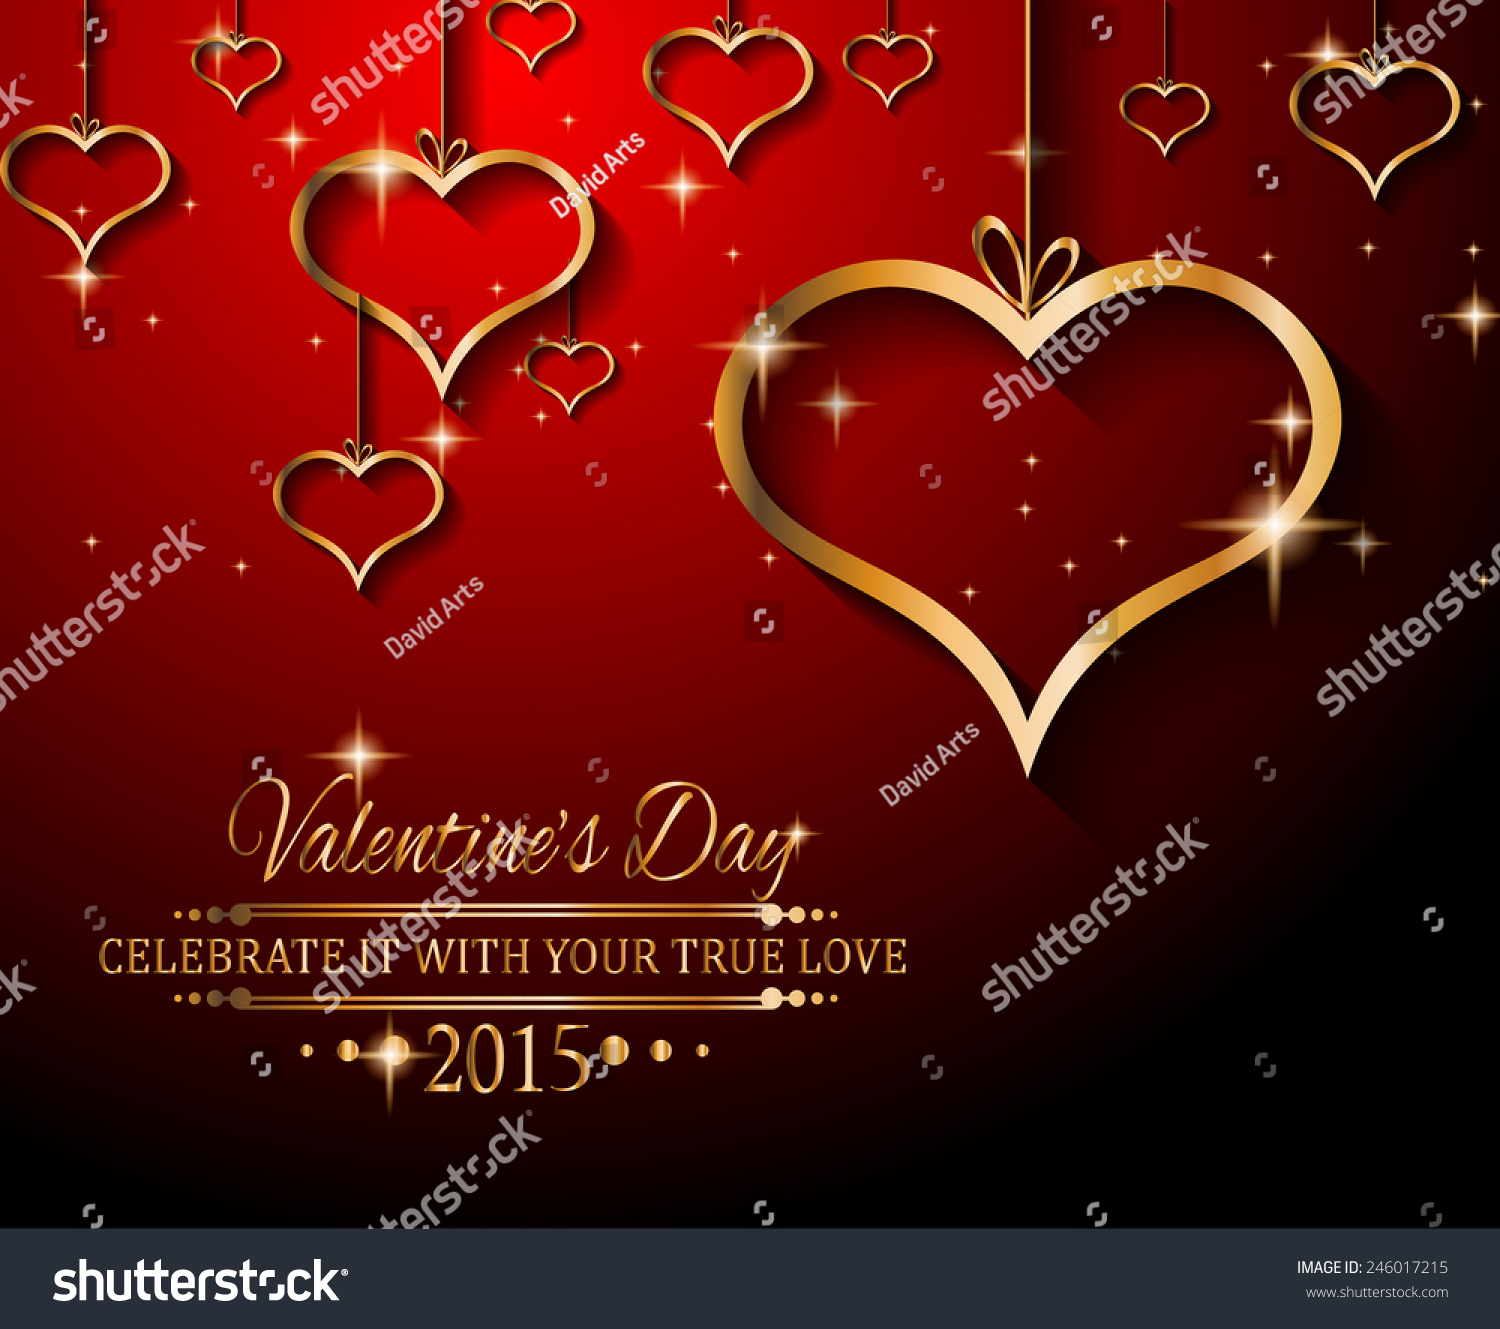 Romance Book Cover Vector ~ Valentines day background dinner invitations romantic